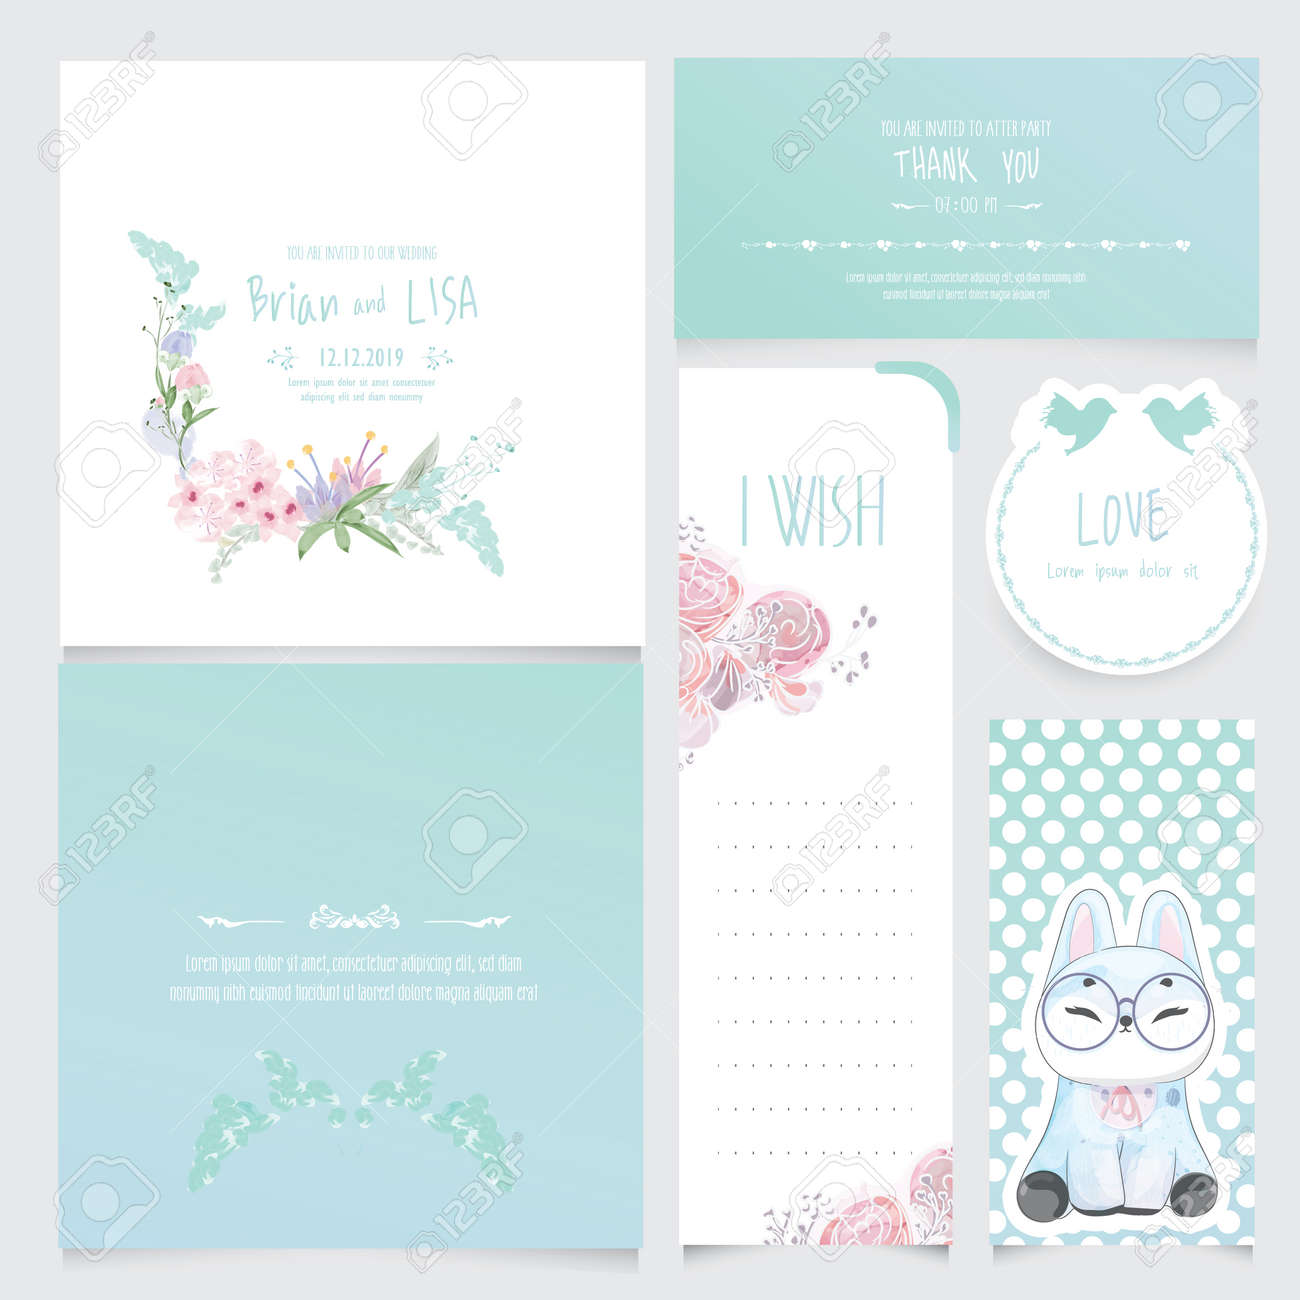 Set Of Vintage Floral Wedding Card in watercolor style. - 134808465